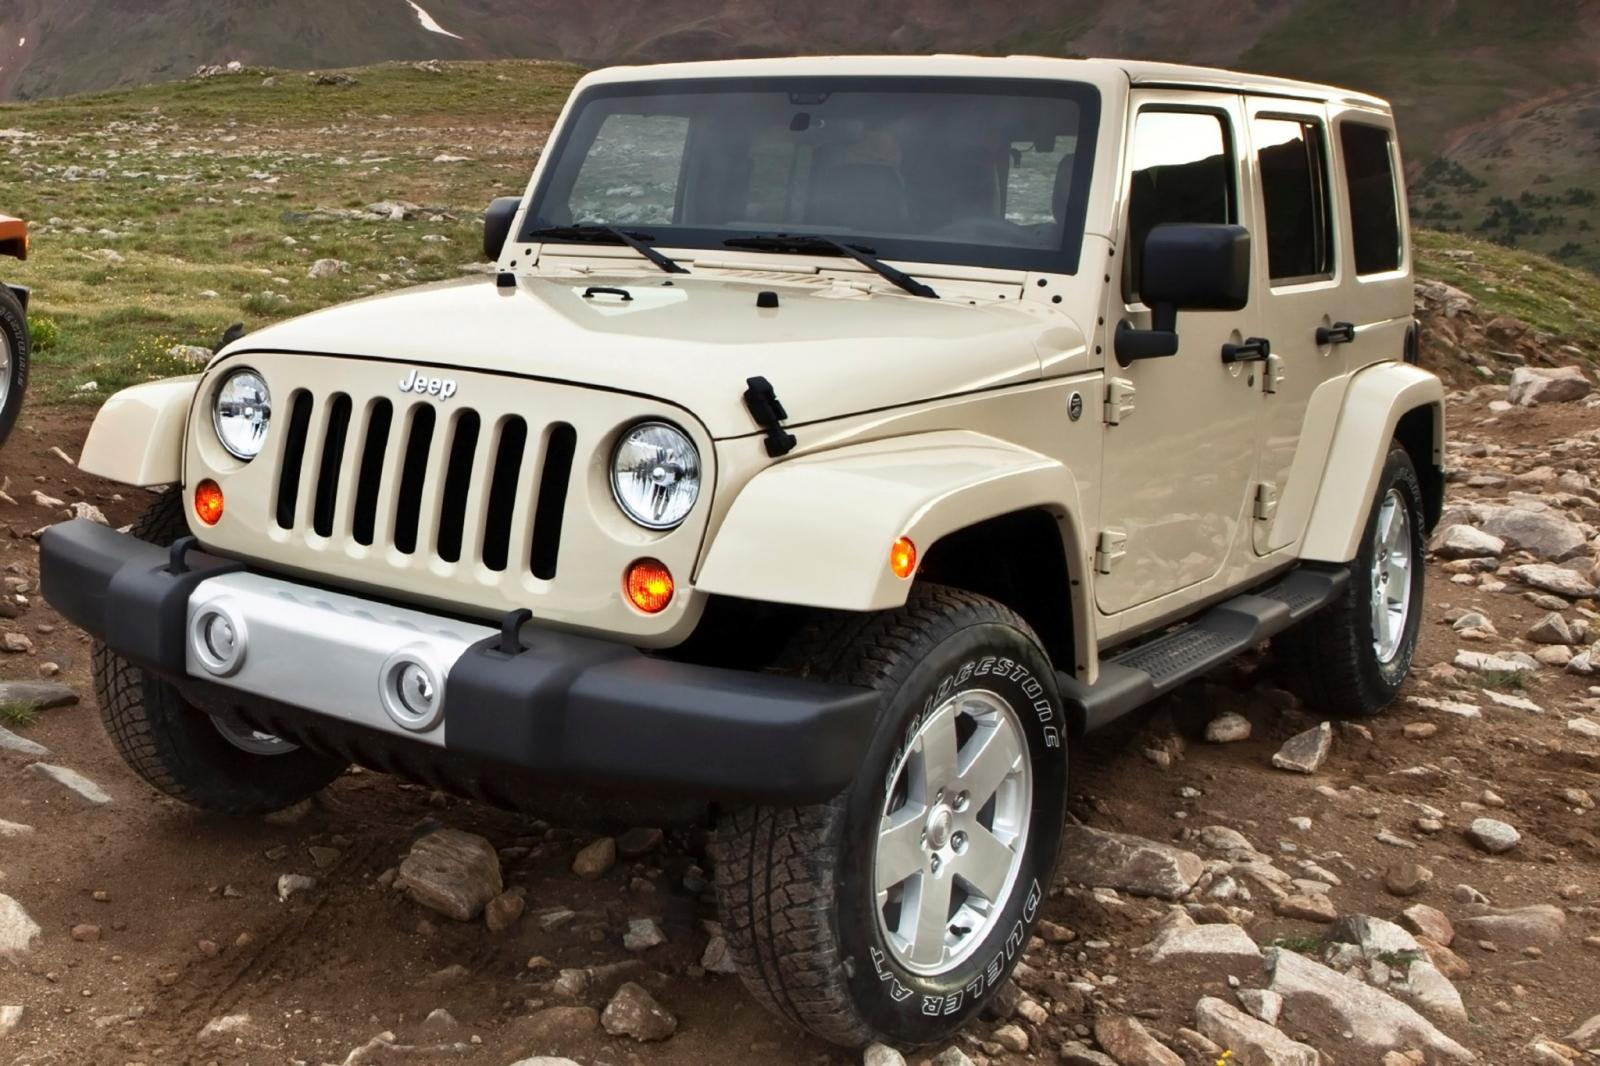 2012 jeep wrangler information and photos zombiedrive. Black Bedroom Furniture Sets. Home Design Ideas